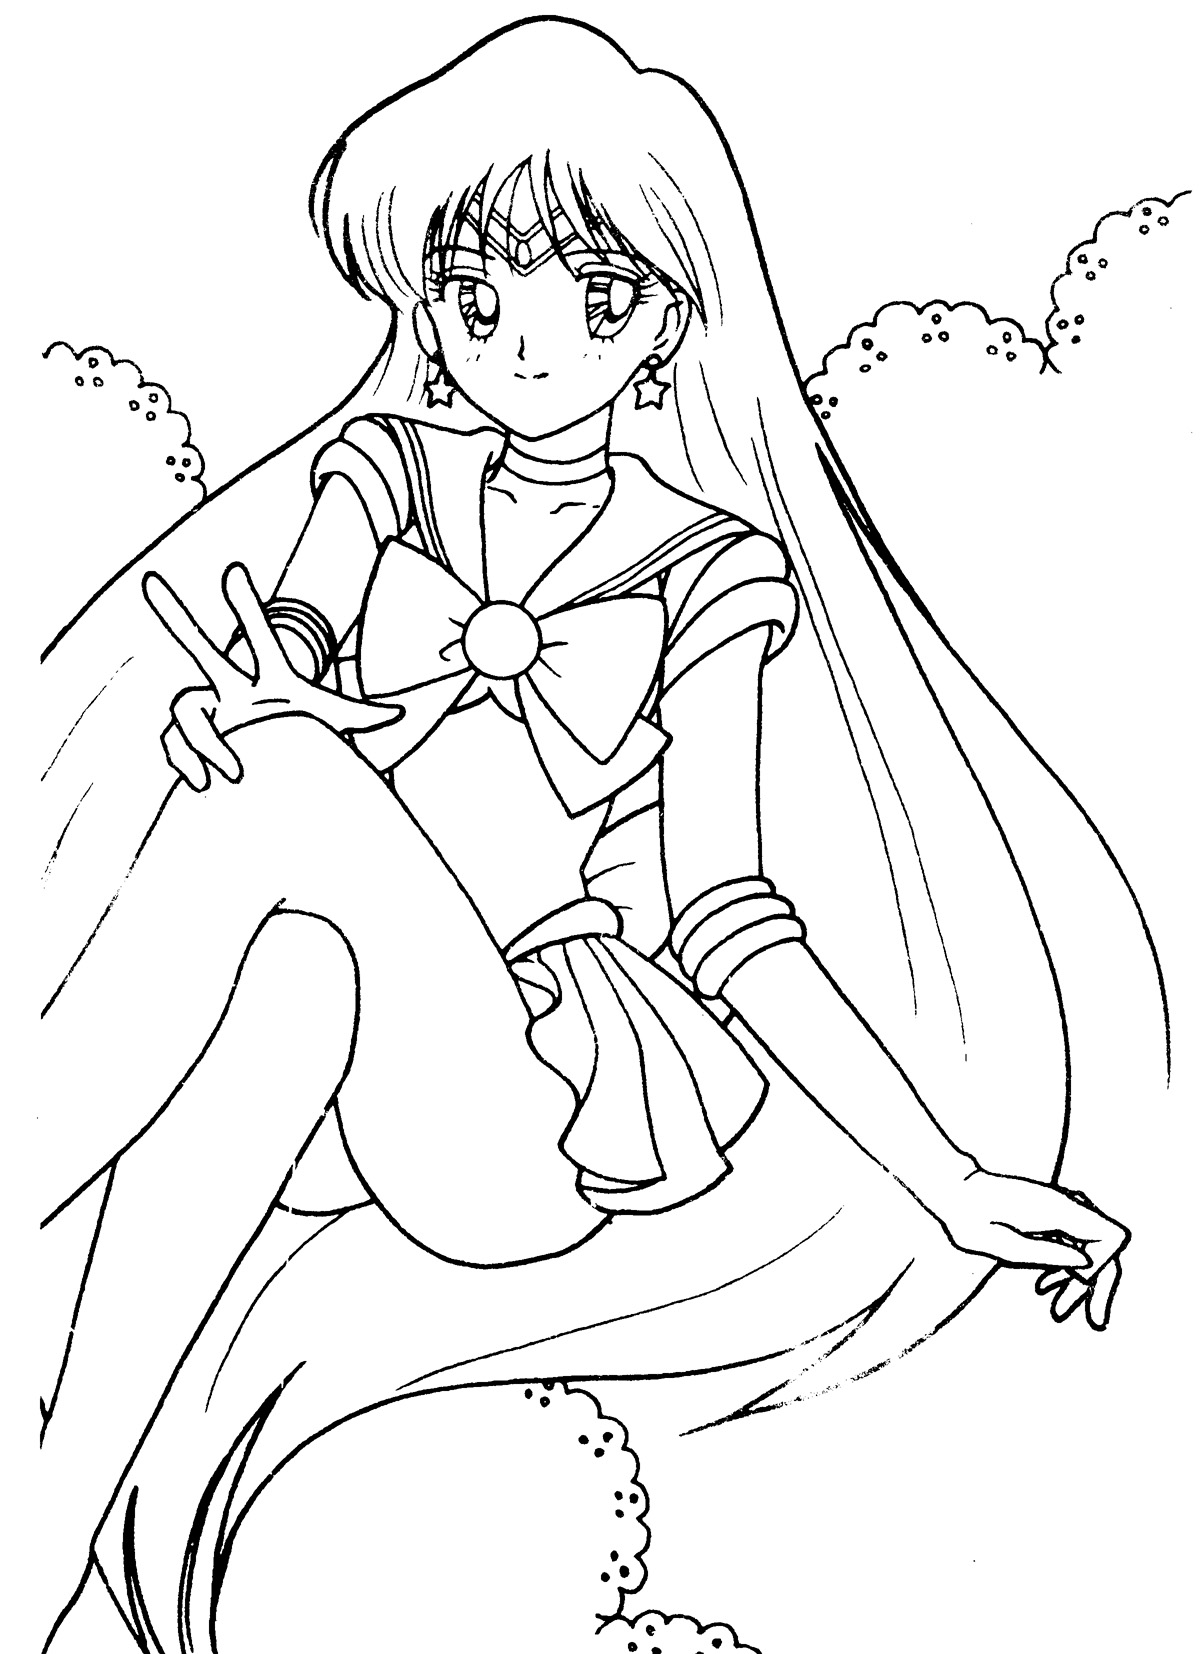 mars planet free coloring pages - photo#26